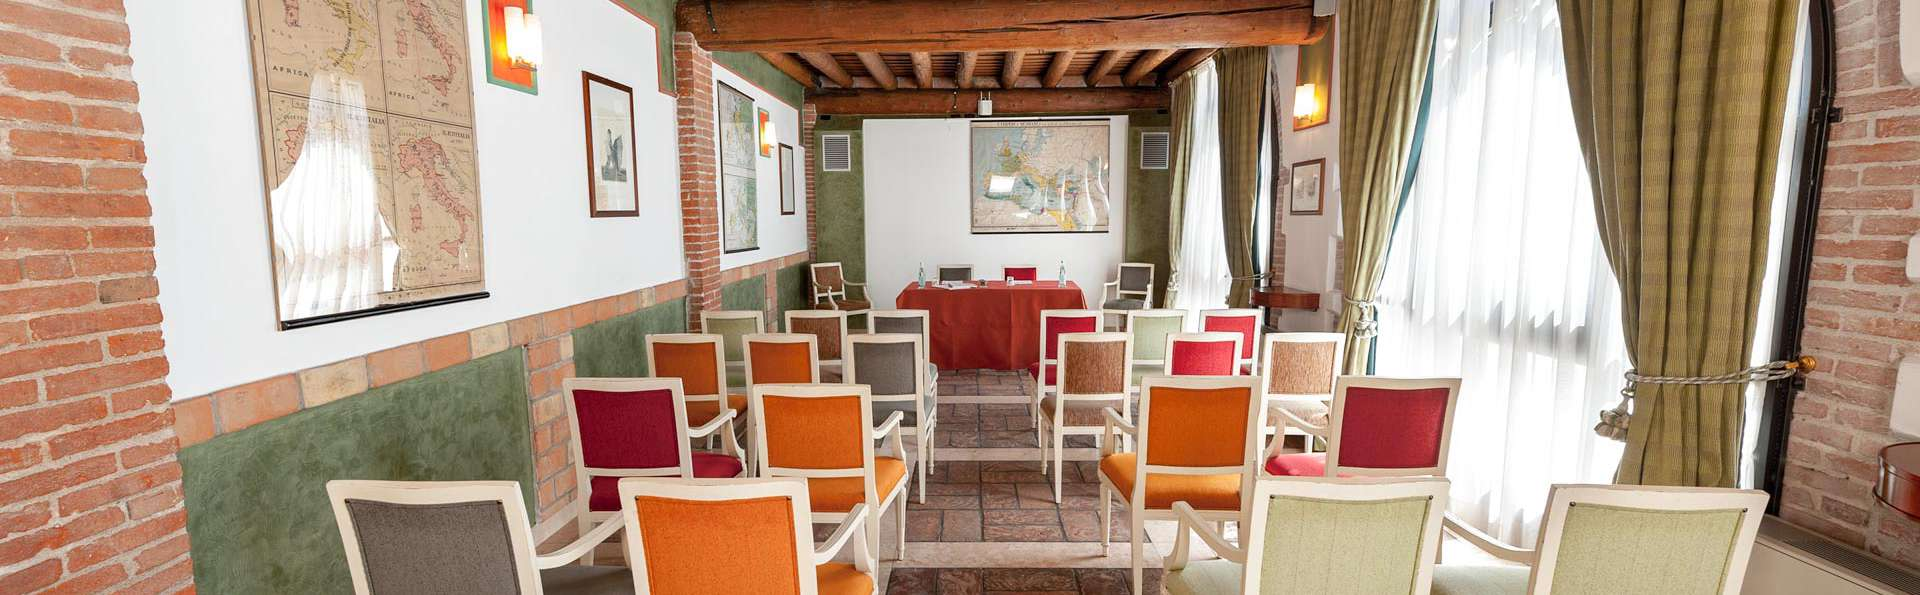 Hotel Villa Malaspina - EDIT_MEETING_09.jpg